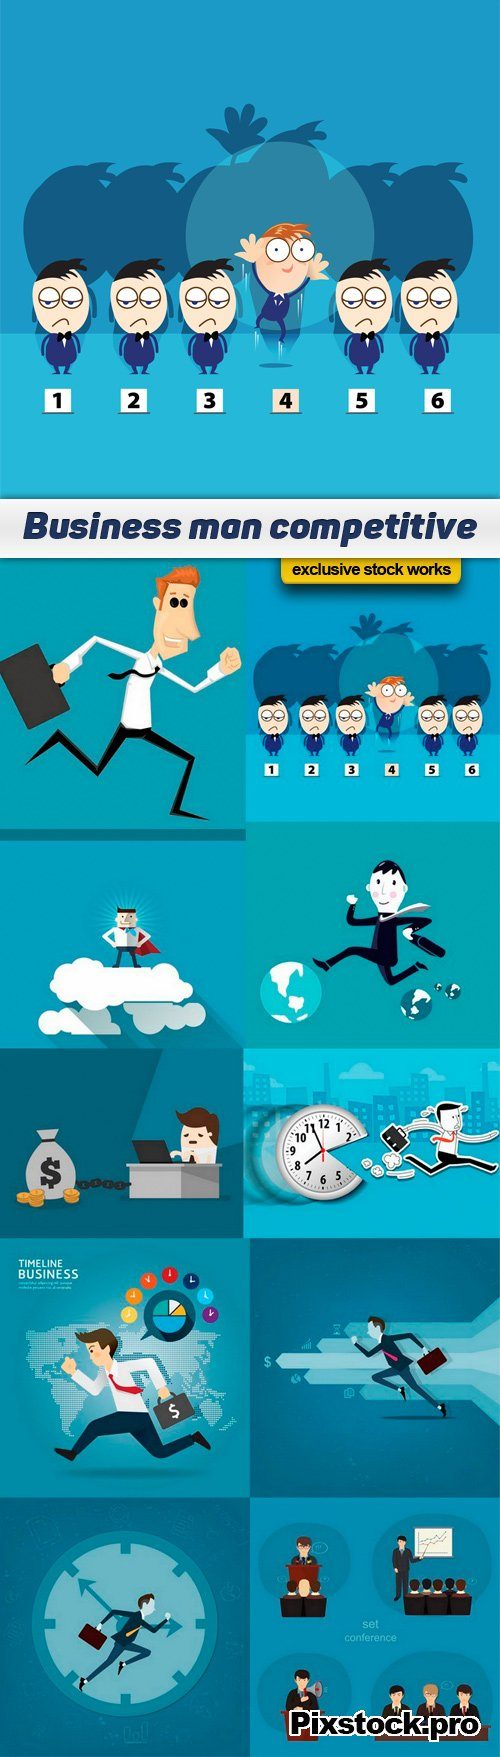 Business man competitive – 10 EPS